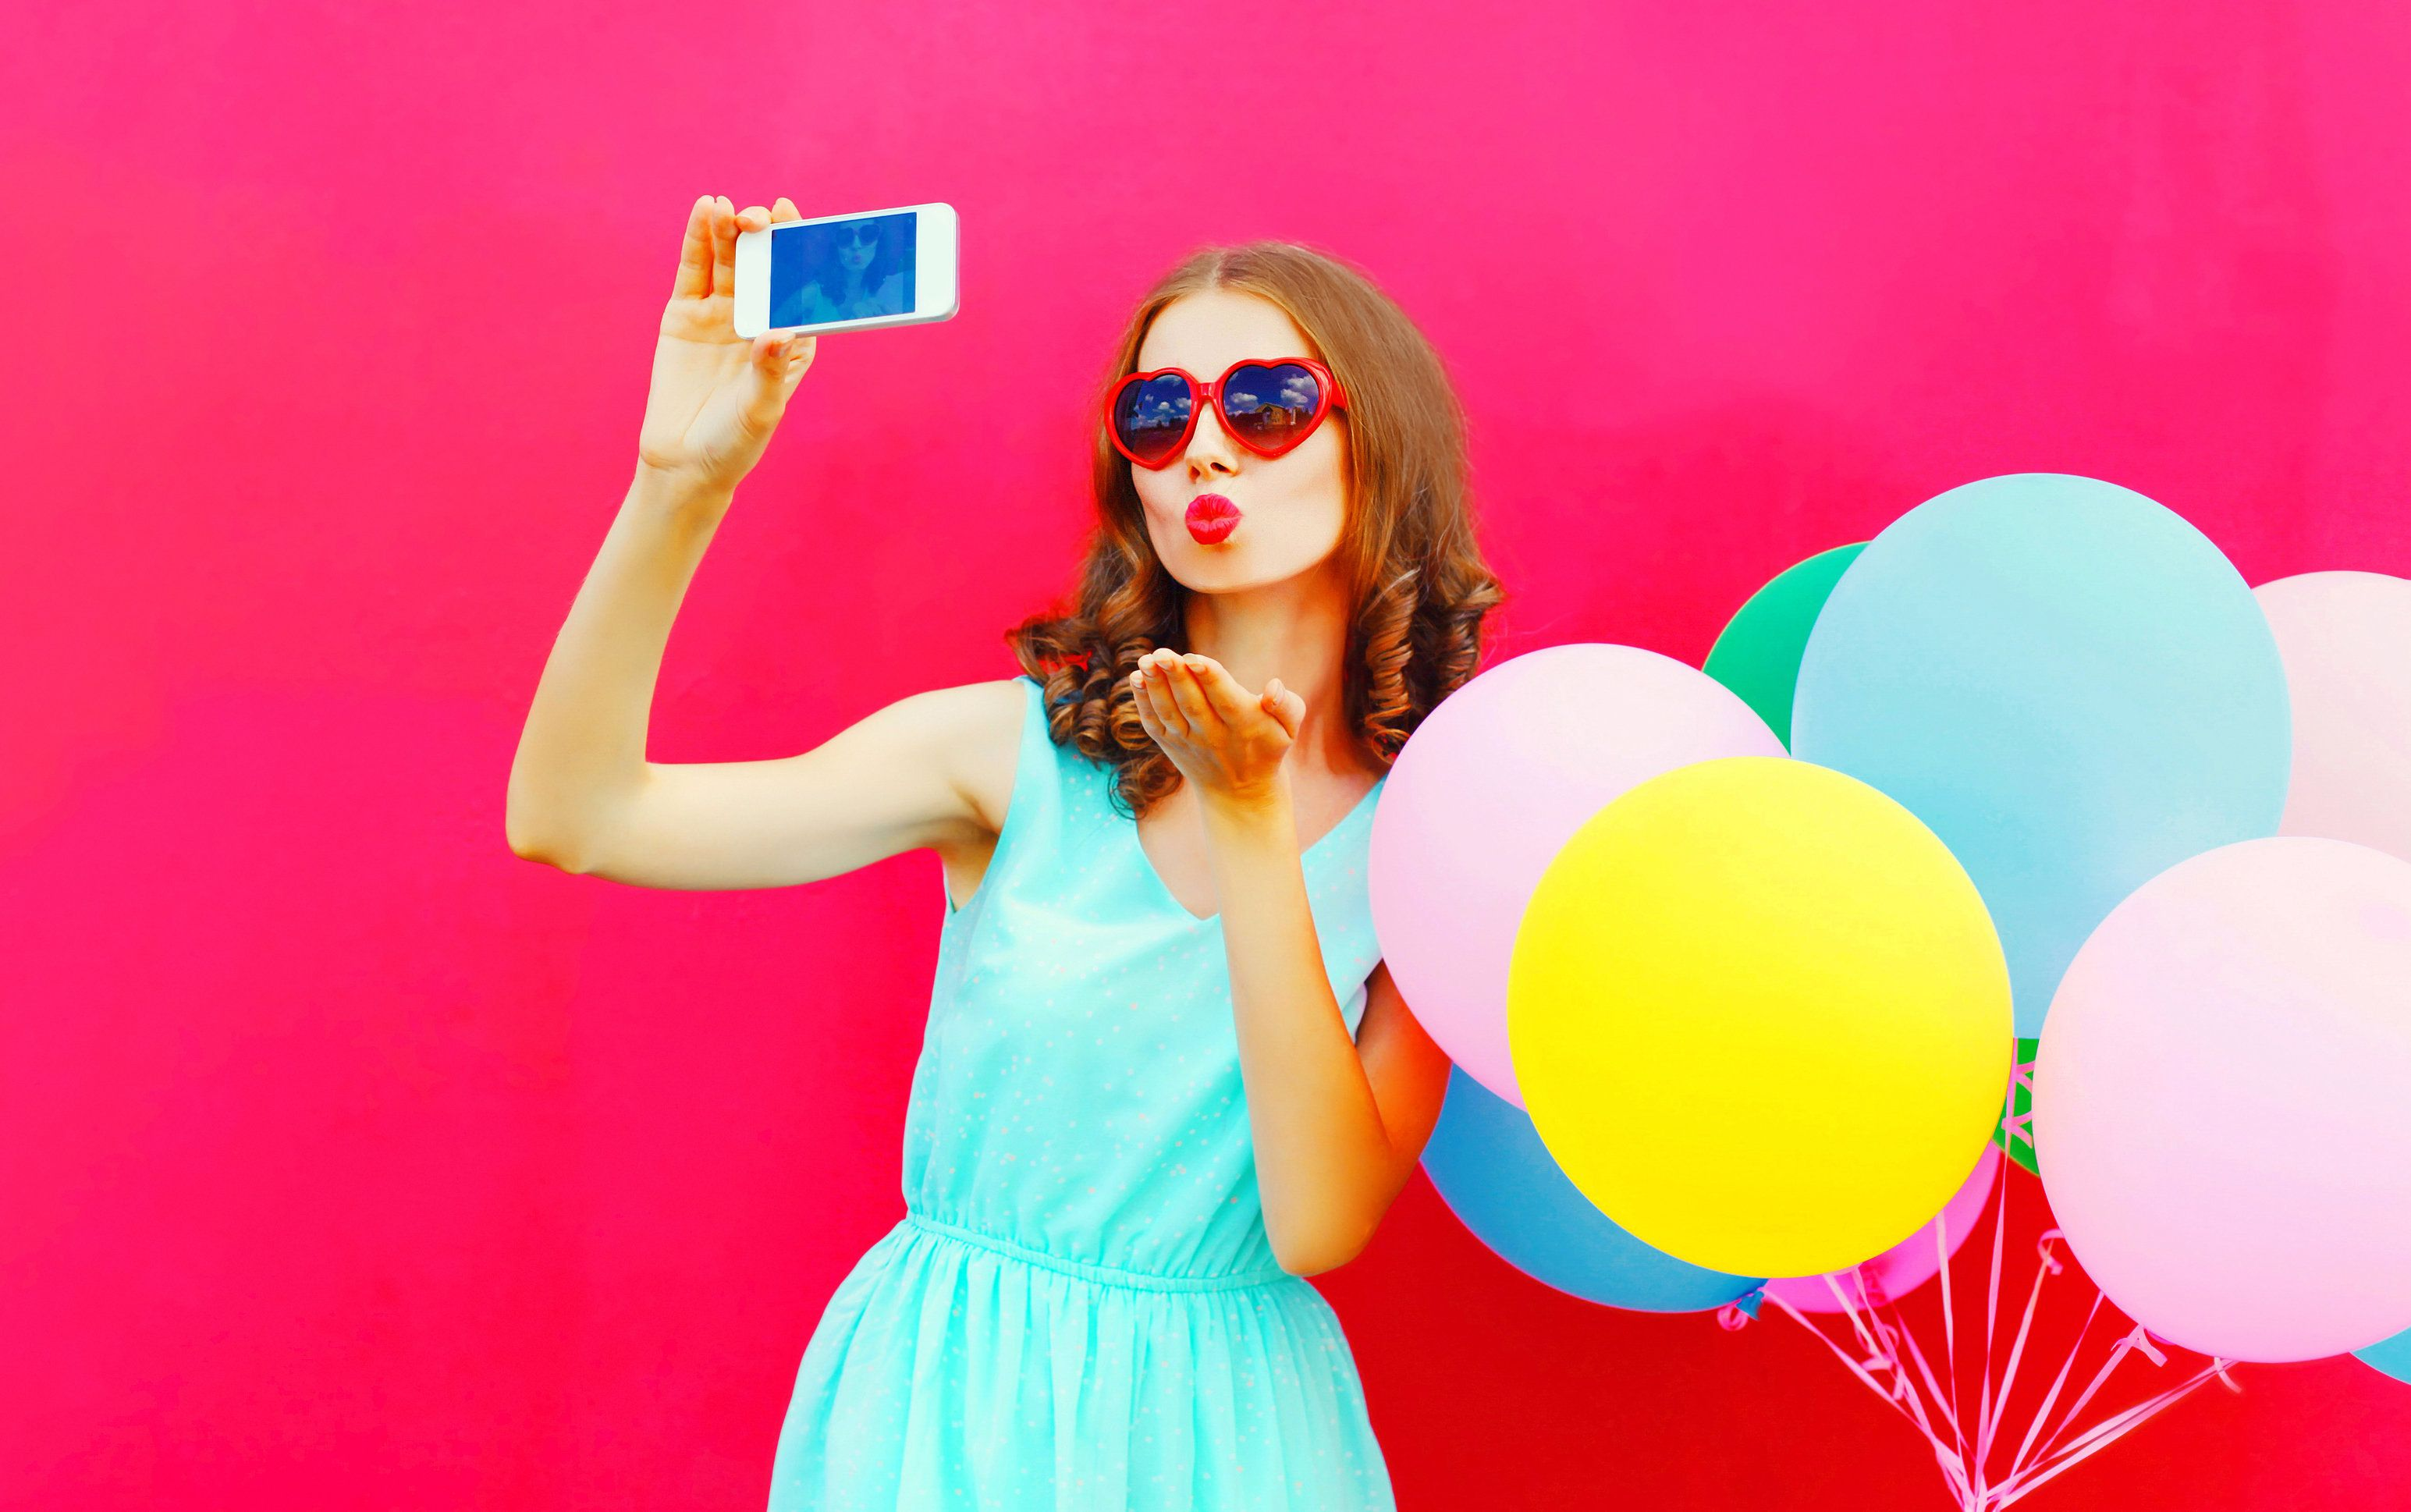 Fashion pretty woman taking a picture on a smartphone sends an air kiss over an air colorful balloons a pink background